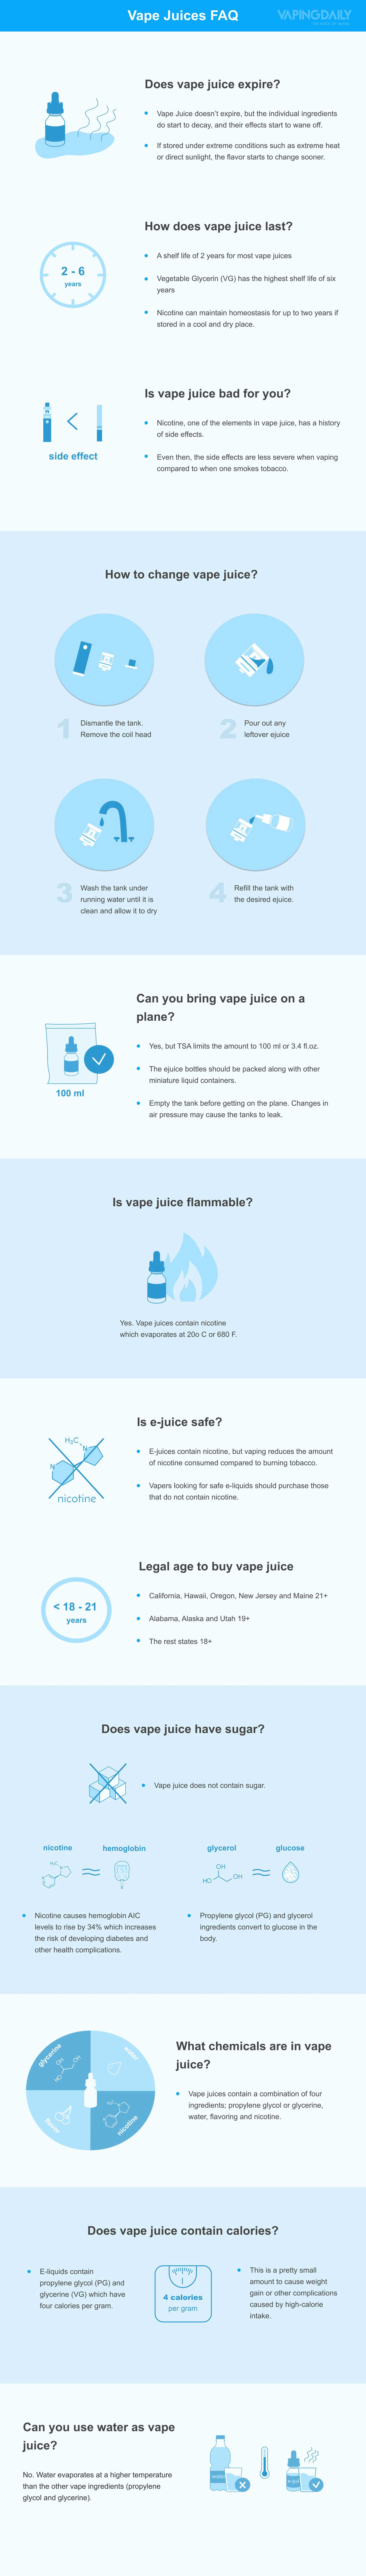 Vape Juices and E-Liquids FAQ - Infographic